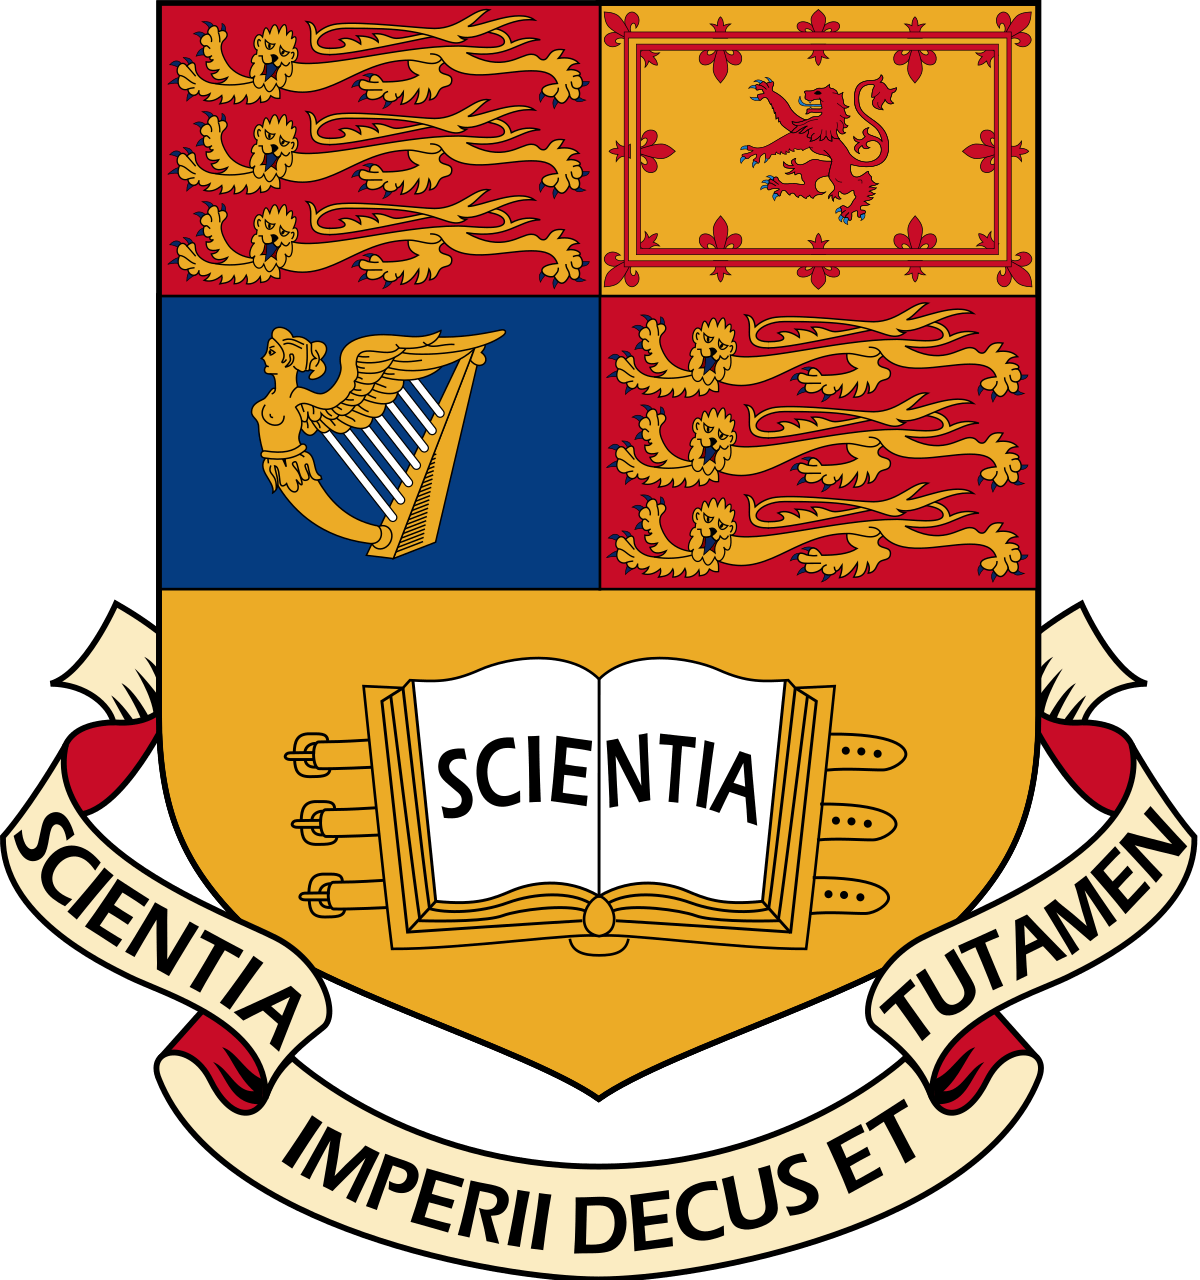 A fábrica de ciência – Imperial College London